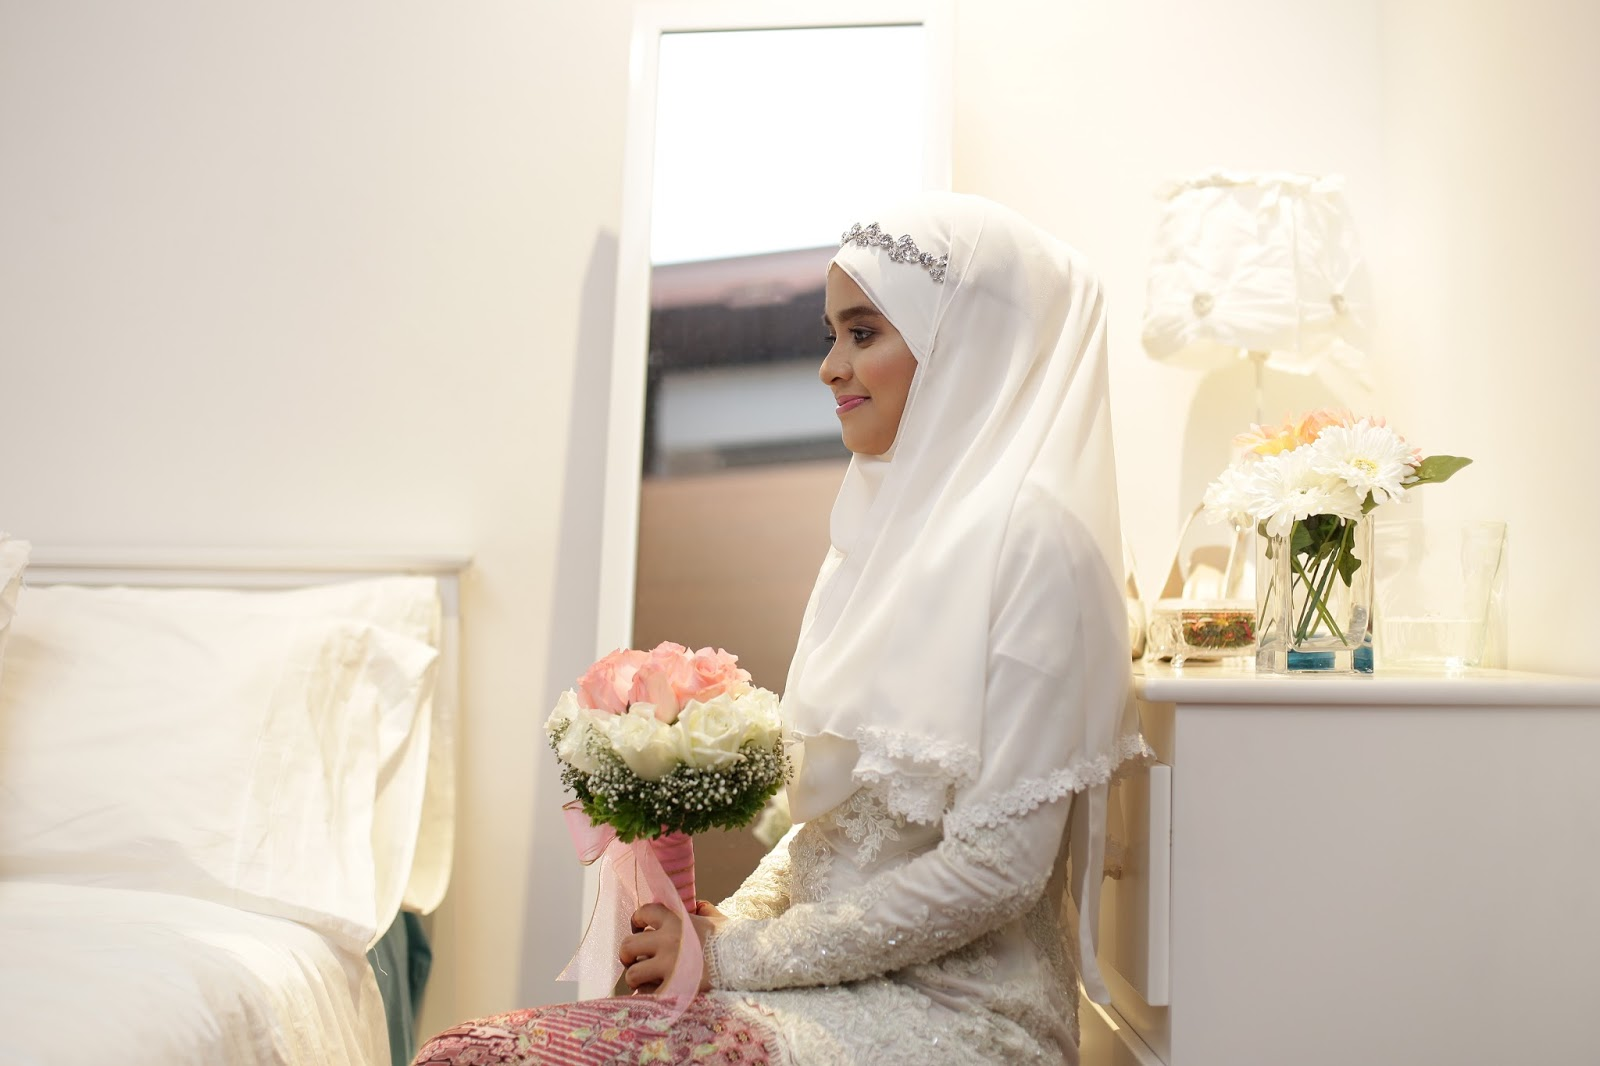 Sugar to my life 16 diy wedding veil nikah reception sorry i dont have a proper picture of the veil hope these help solutioingenieria Images